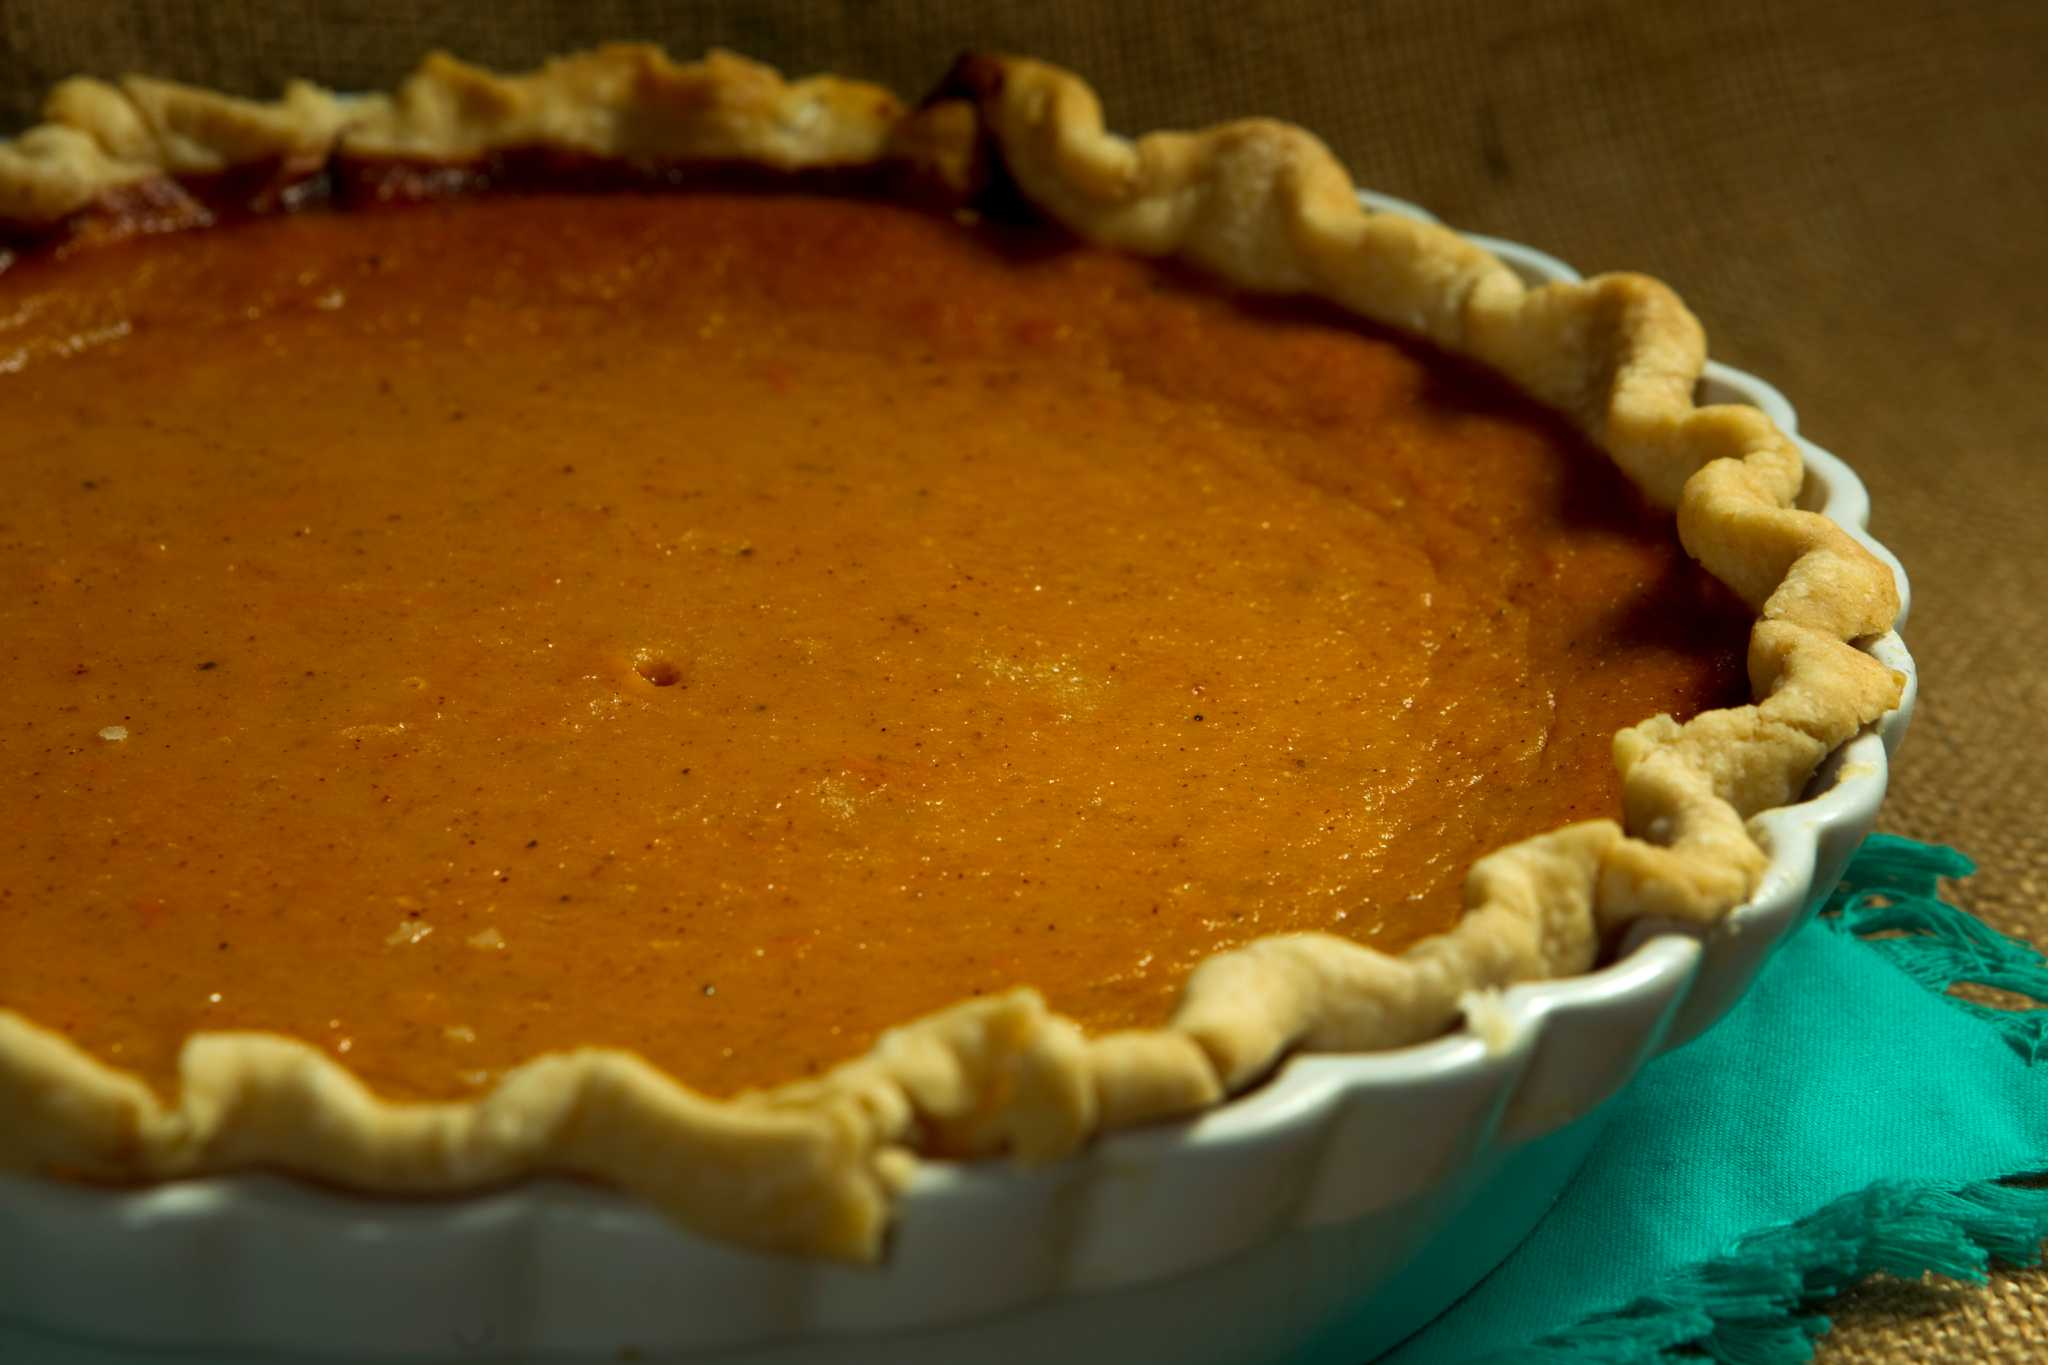 Descriptive essay on sweet potato pie